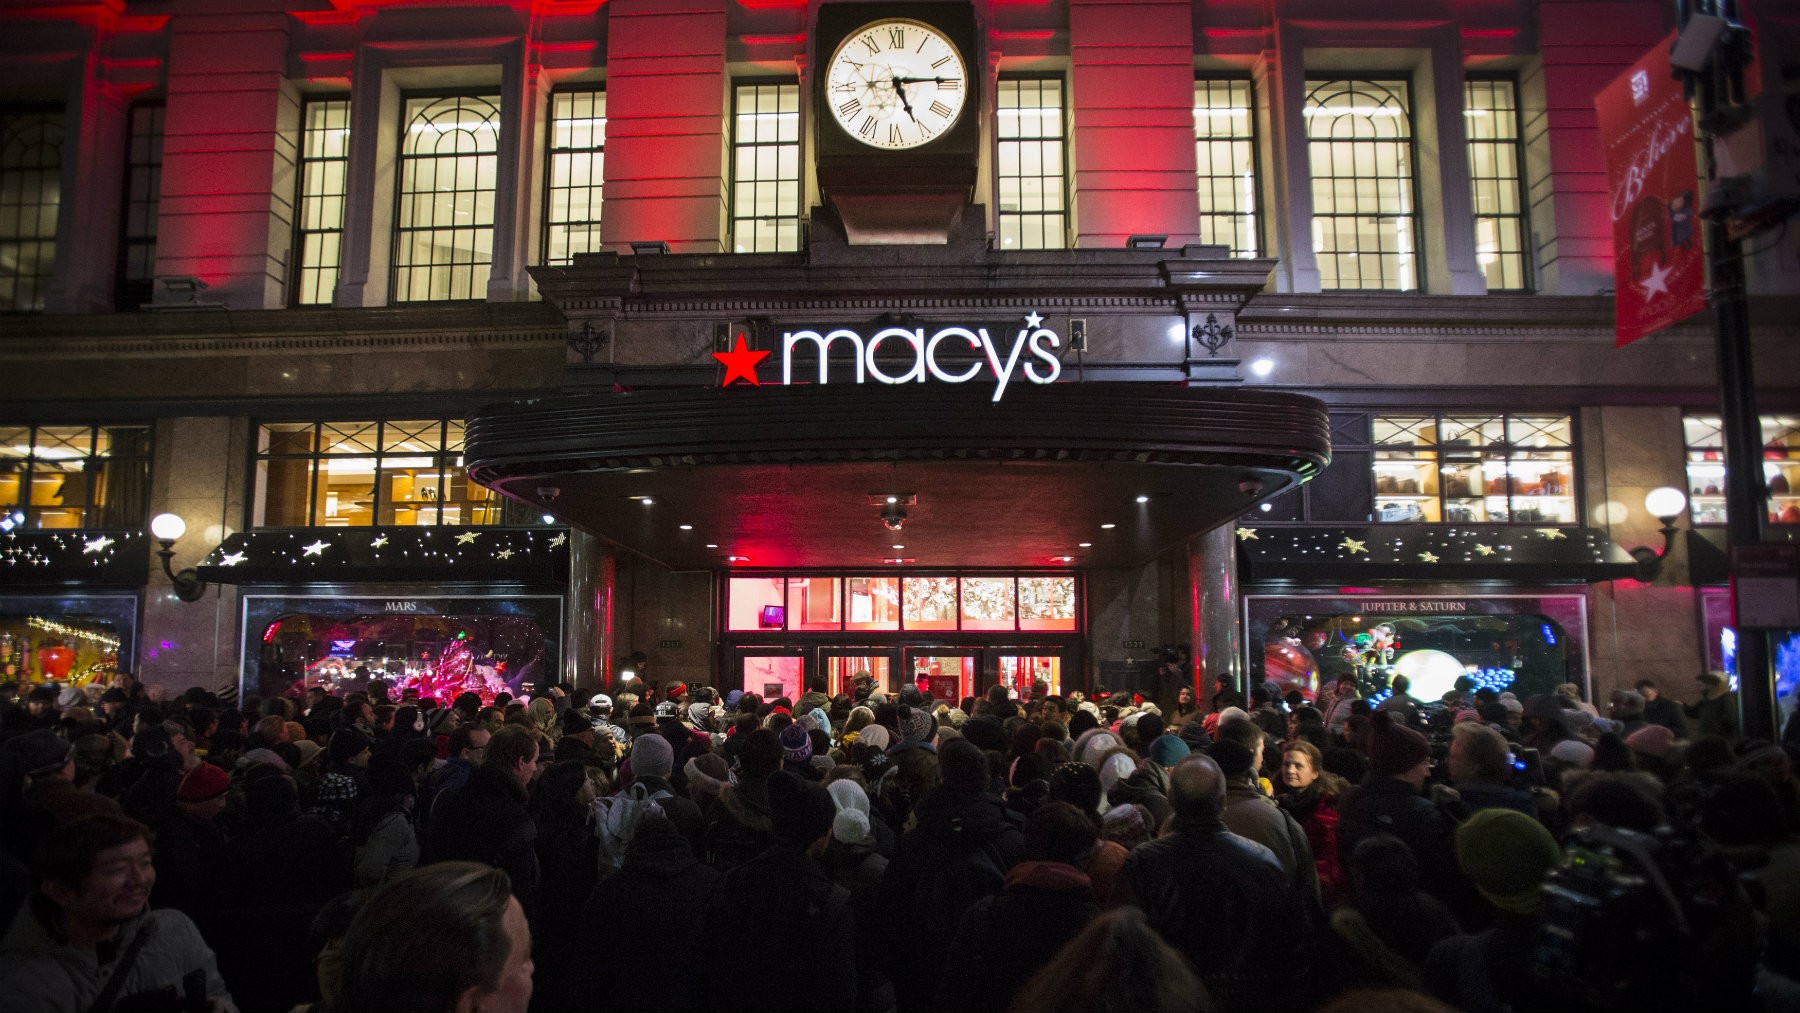 Shoppers wait to enter Macy's to kick off Black Friday sales in New York November 27, 2014. Select stores opened Thursday to kick off the Black Friday sales, with the Friday after Thanksgiving typically being the busiest shopping day of the year in the U.S. REUTERS/Andrew Kelly (UNITED STATES - Tags: SOCIETY BUSINESS)